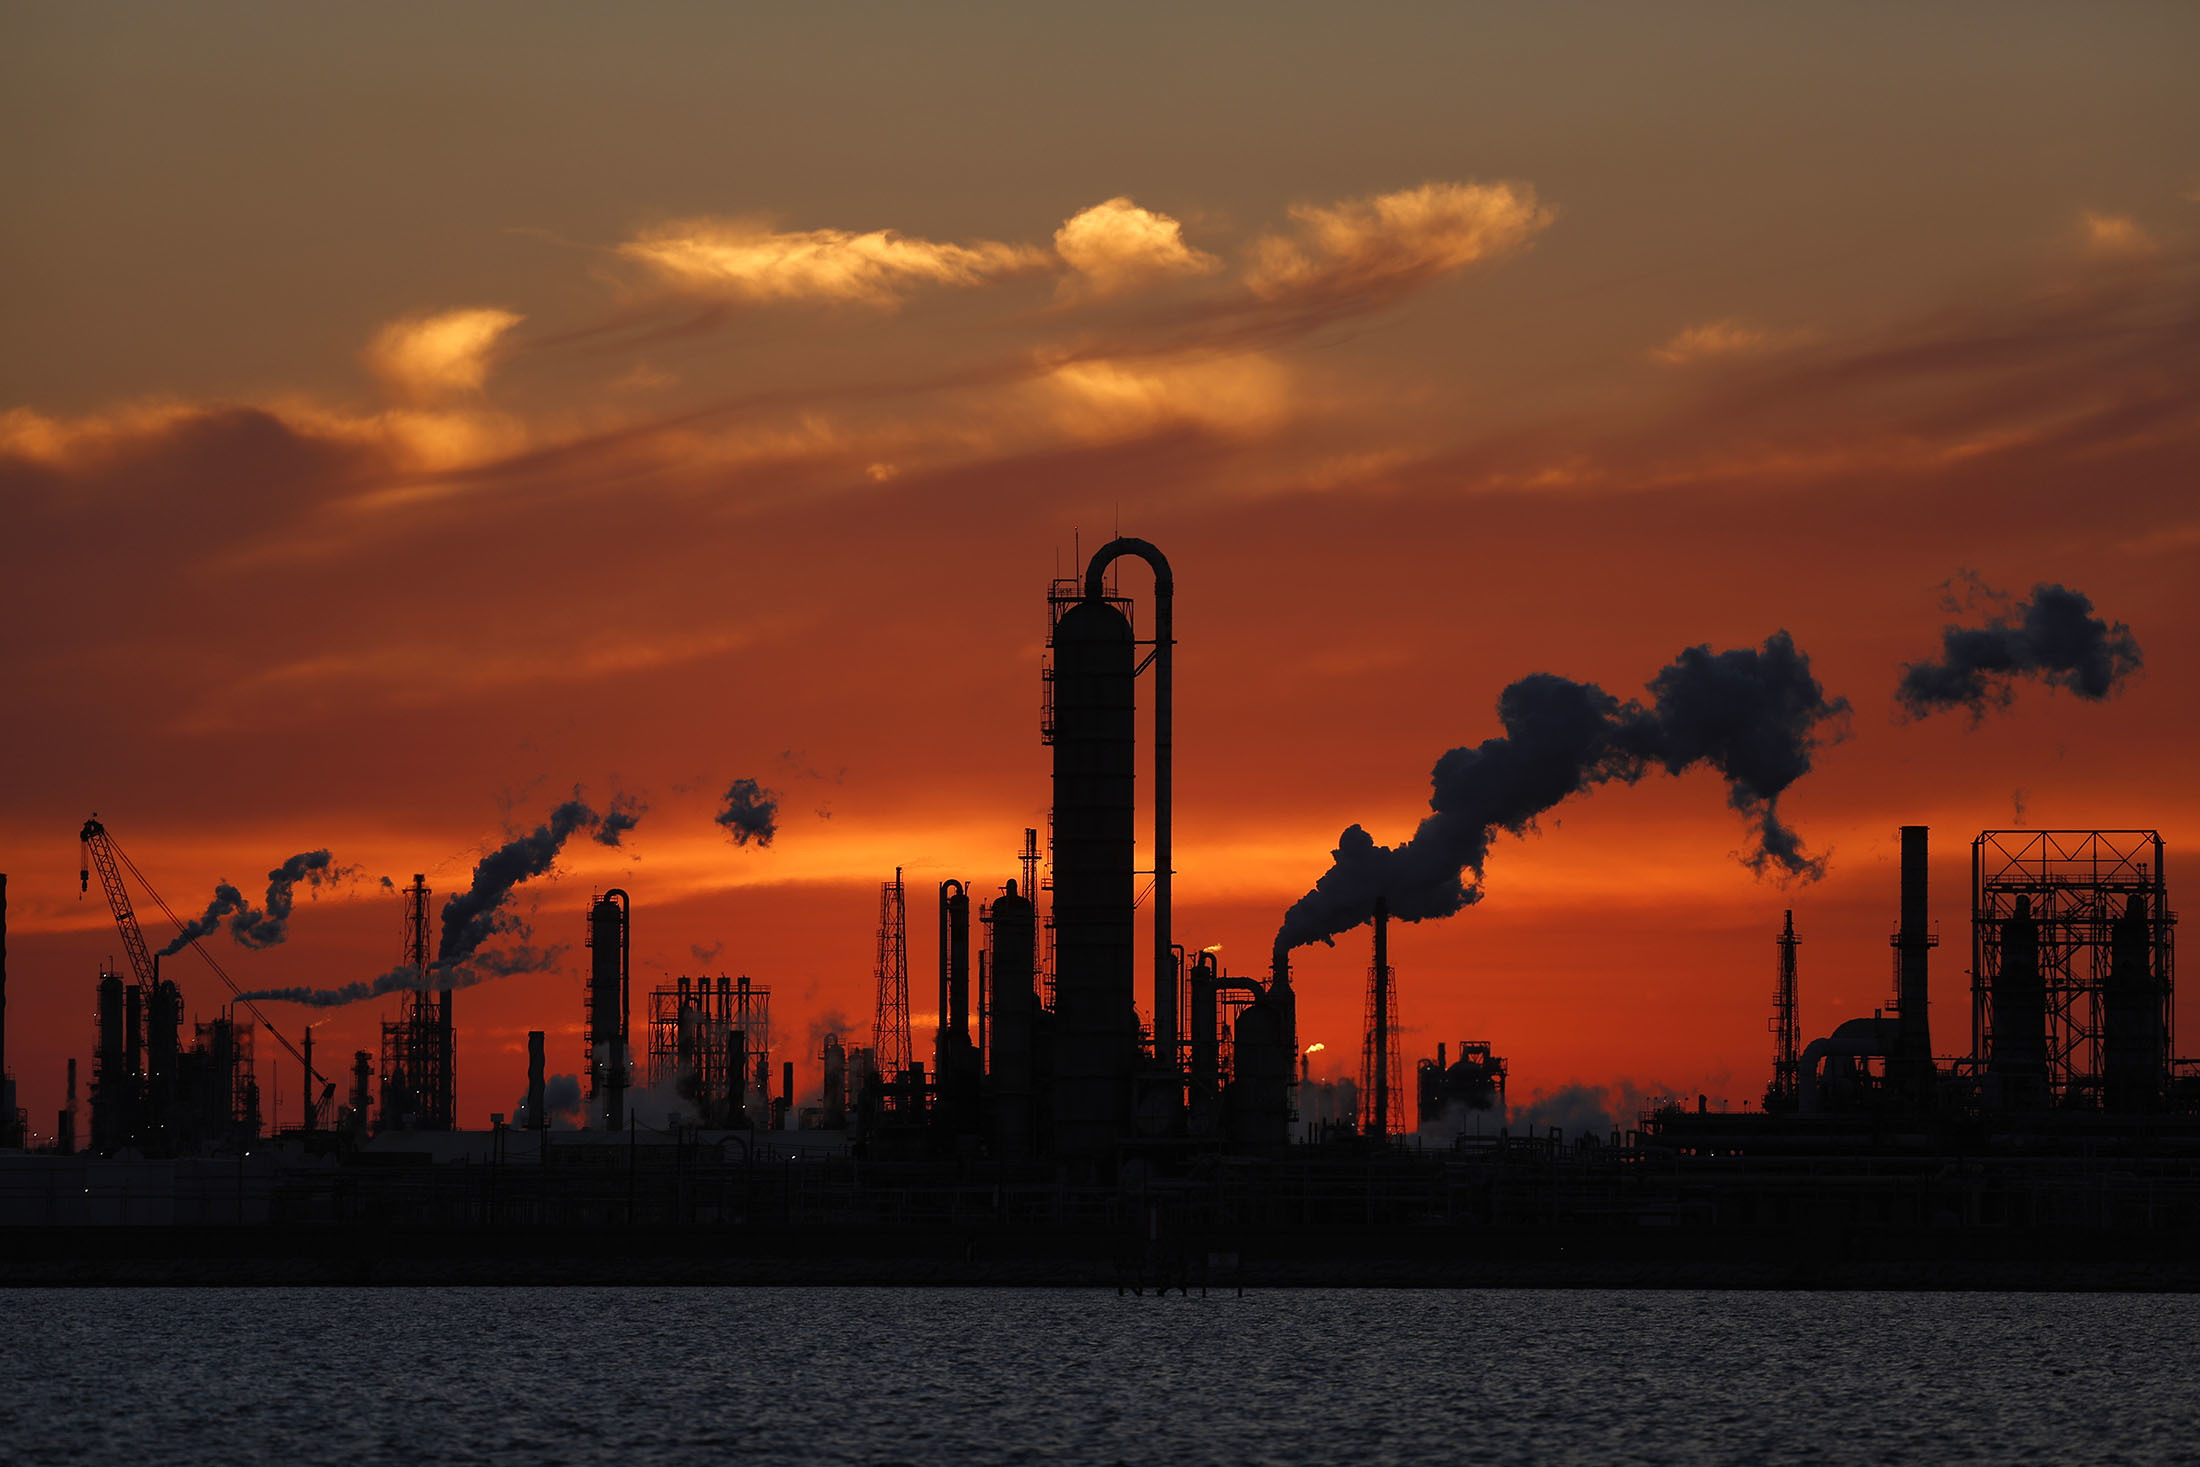 Emissions rise from an oil refinery at sunset in Texas City, Texas, U.S., on Thursday, Feb. 16, 2017. , Photographer: Luke Sharrett/Bloomberg